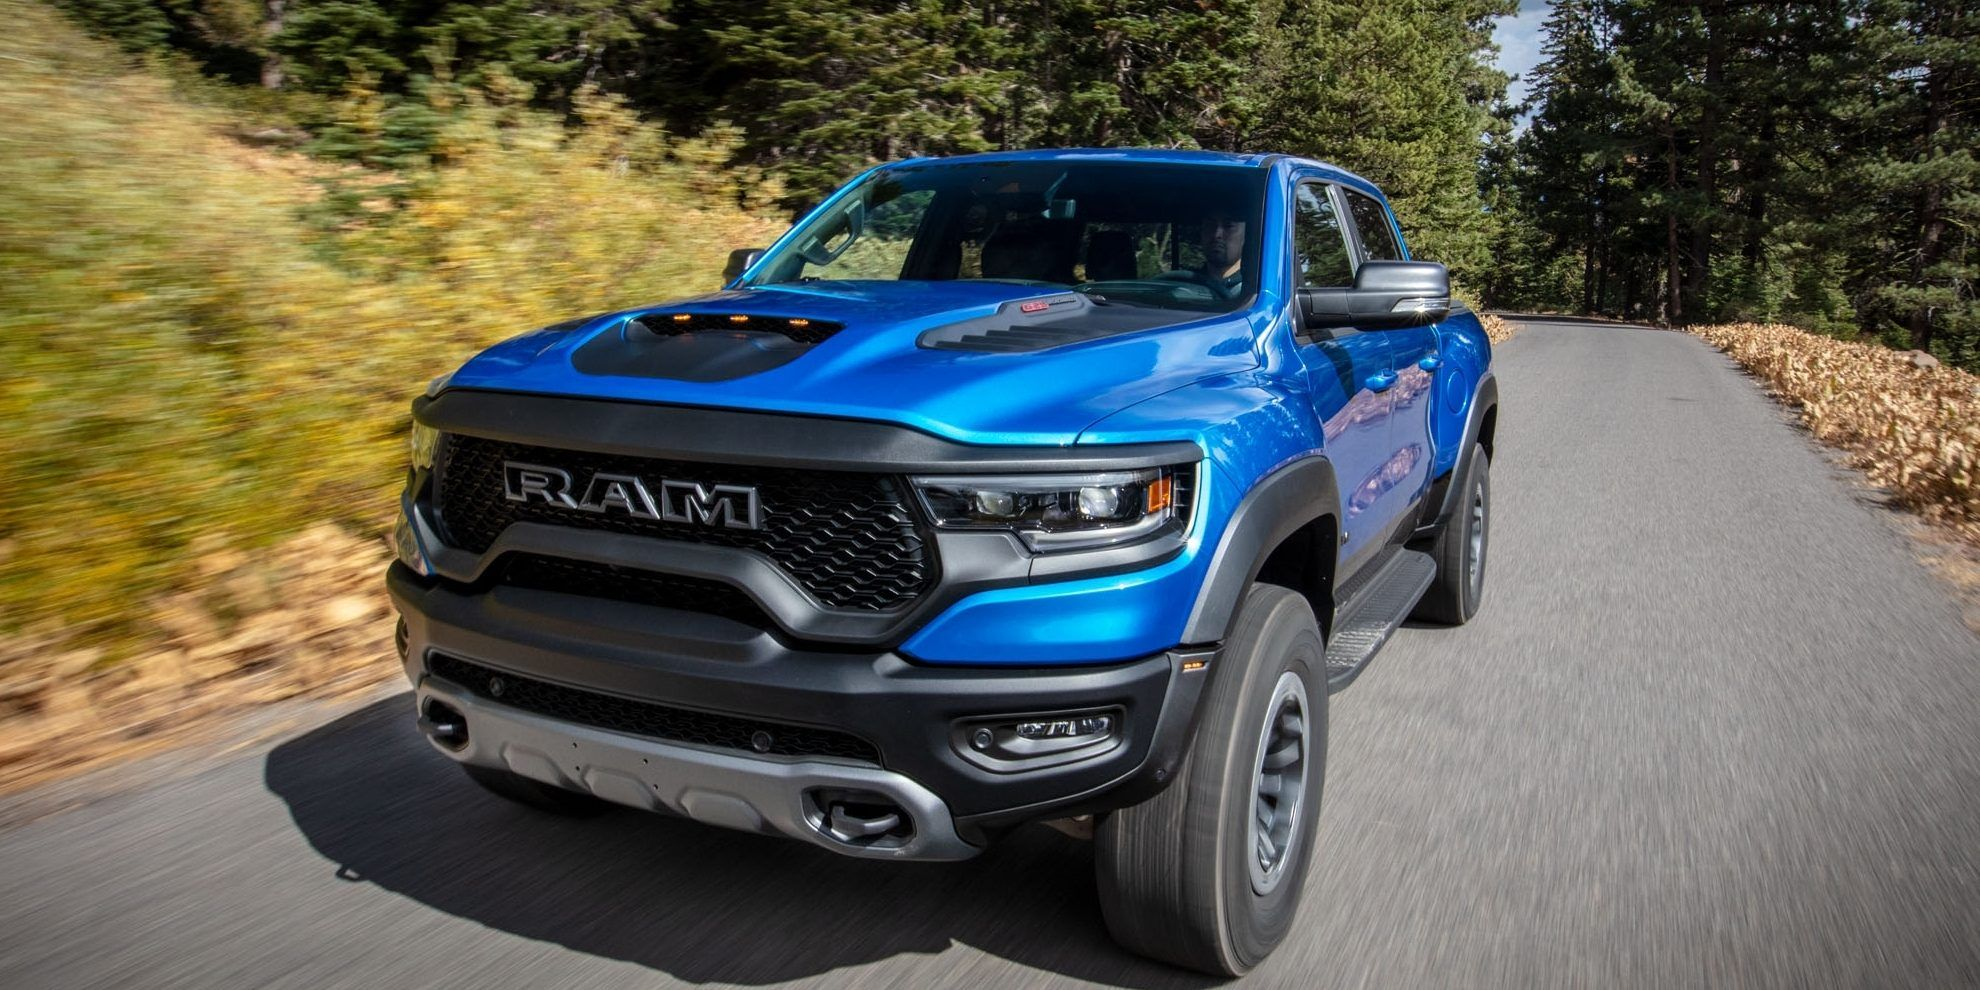 Ranking The Most Powerful Ram Trucks Ever Made